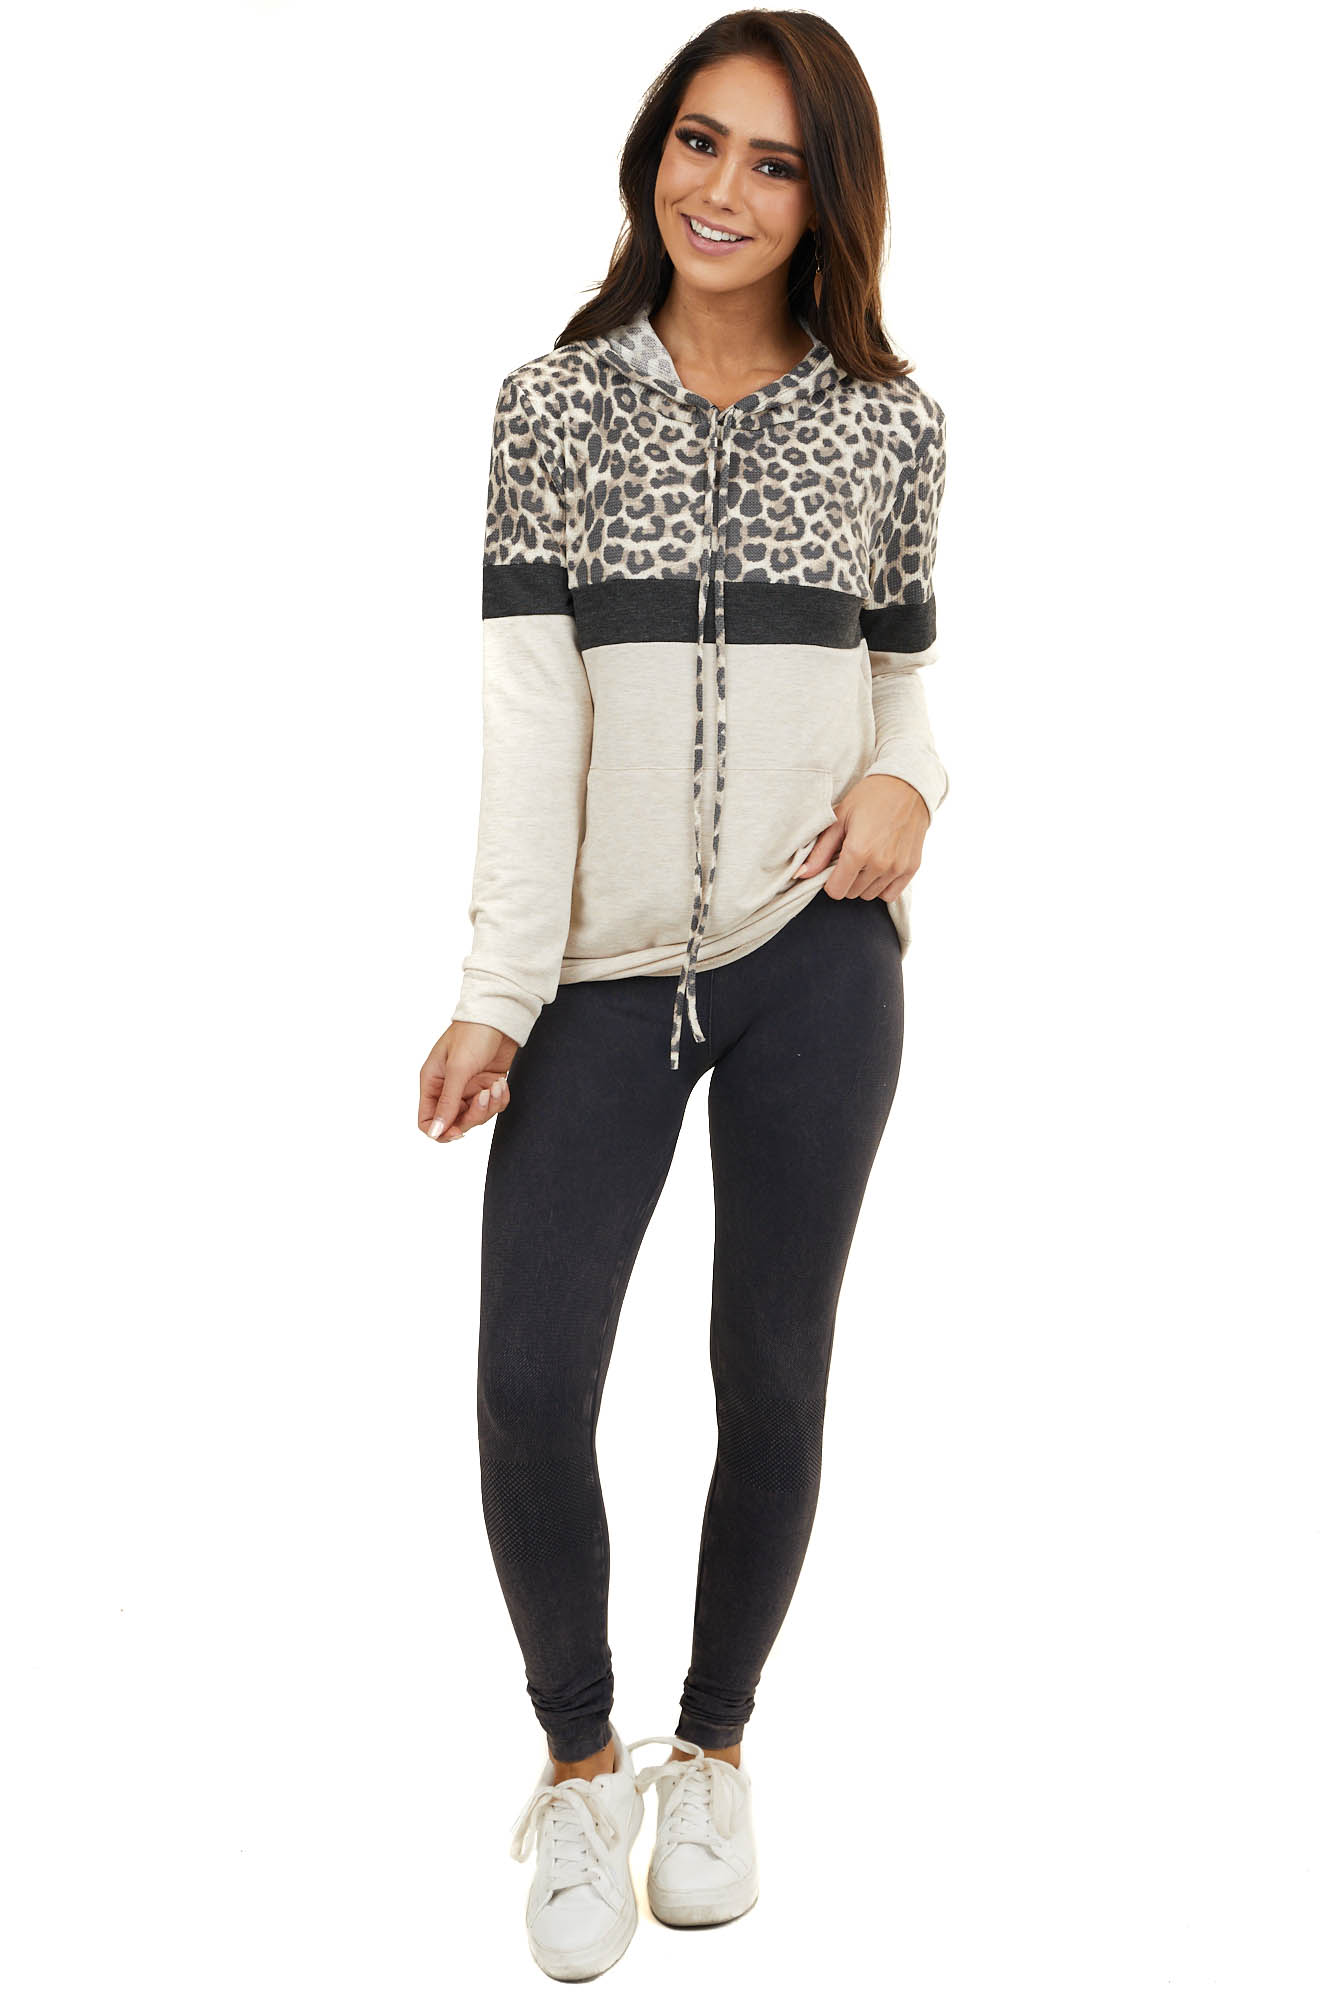 Tan Leopard Colorblock Hooded Sweatshirt with Front Pocket